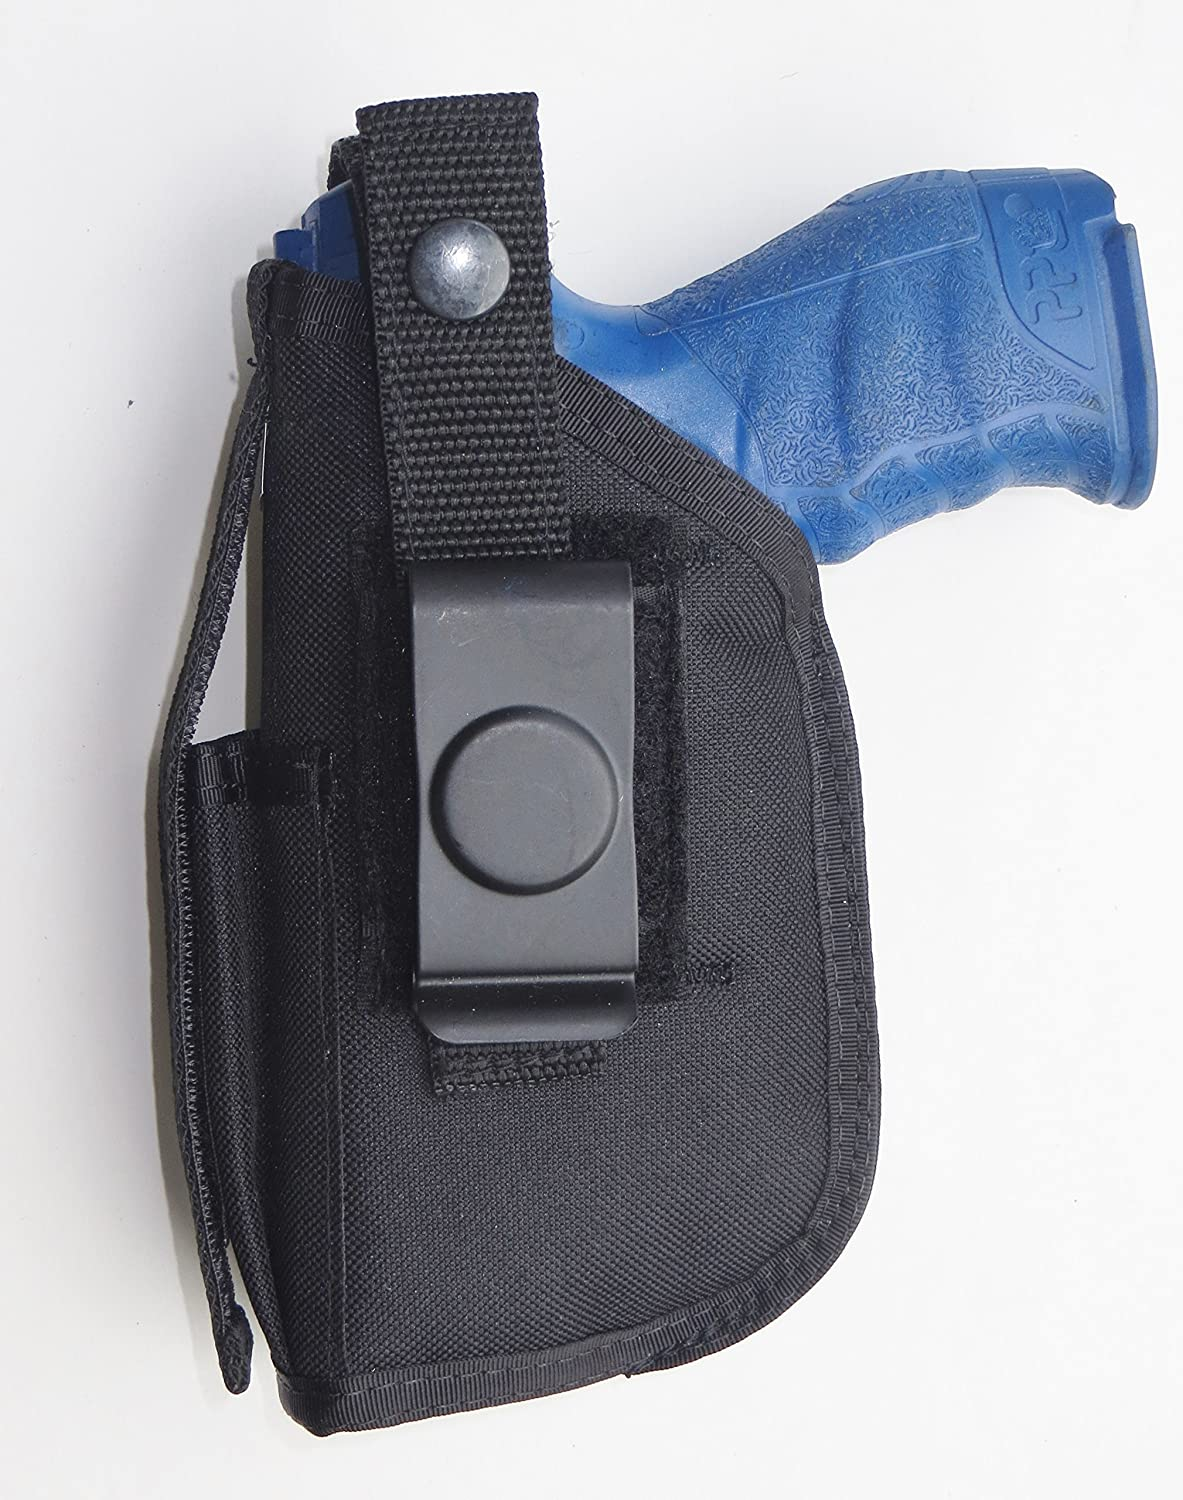 Hip Holster for Walther PPX M1 pistols with built-in Extra